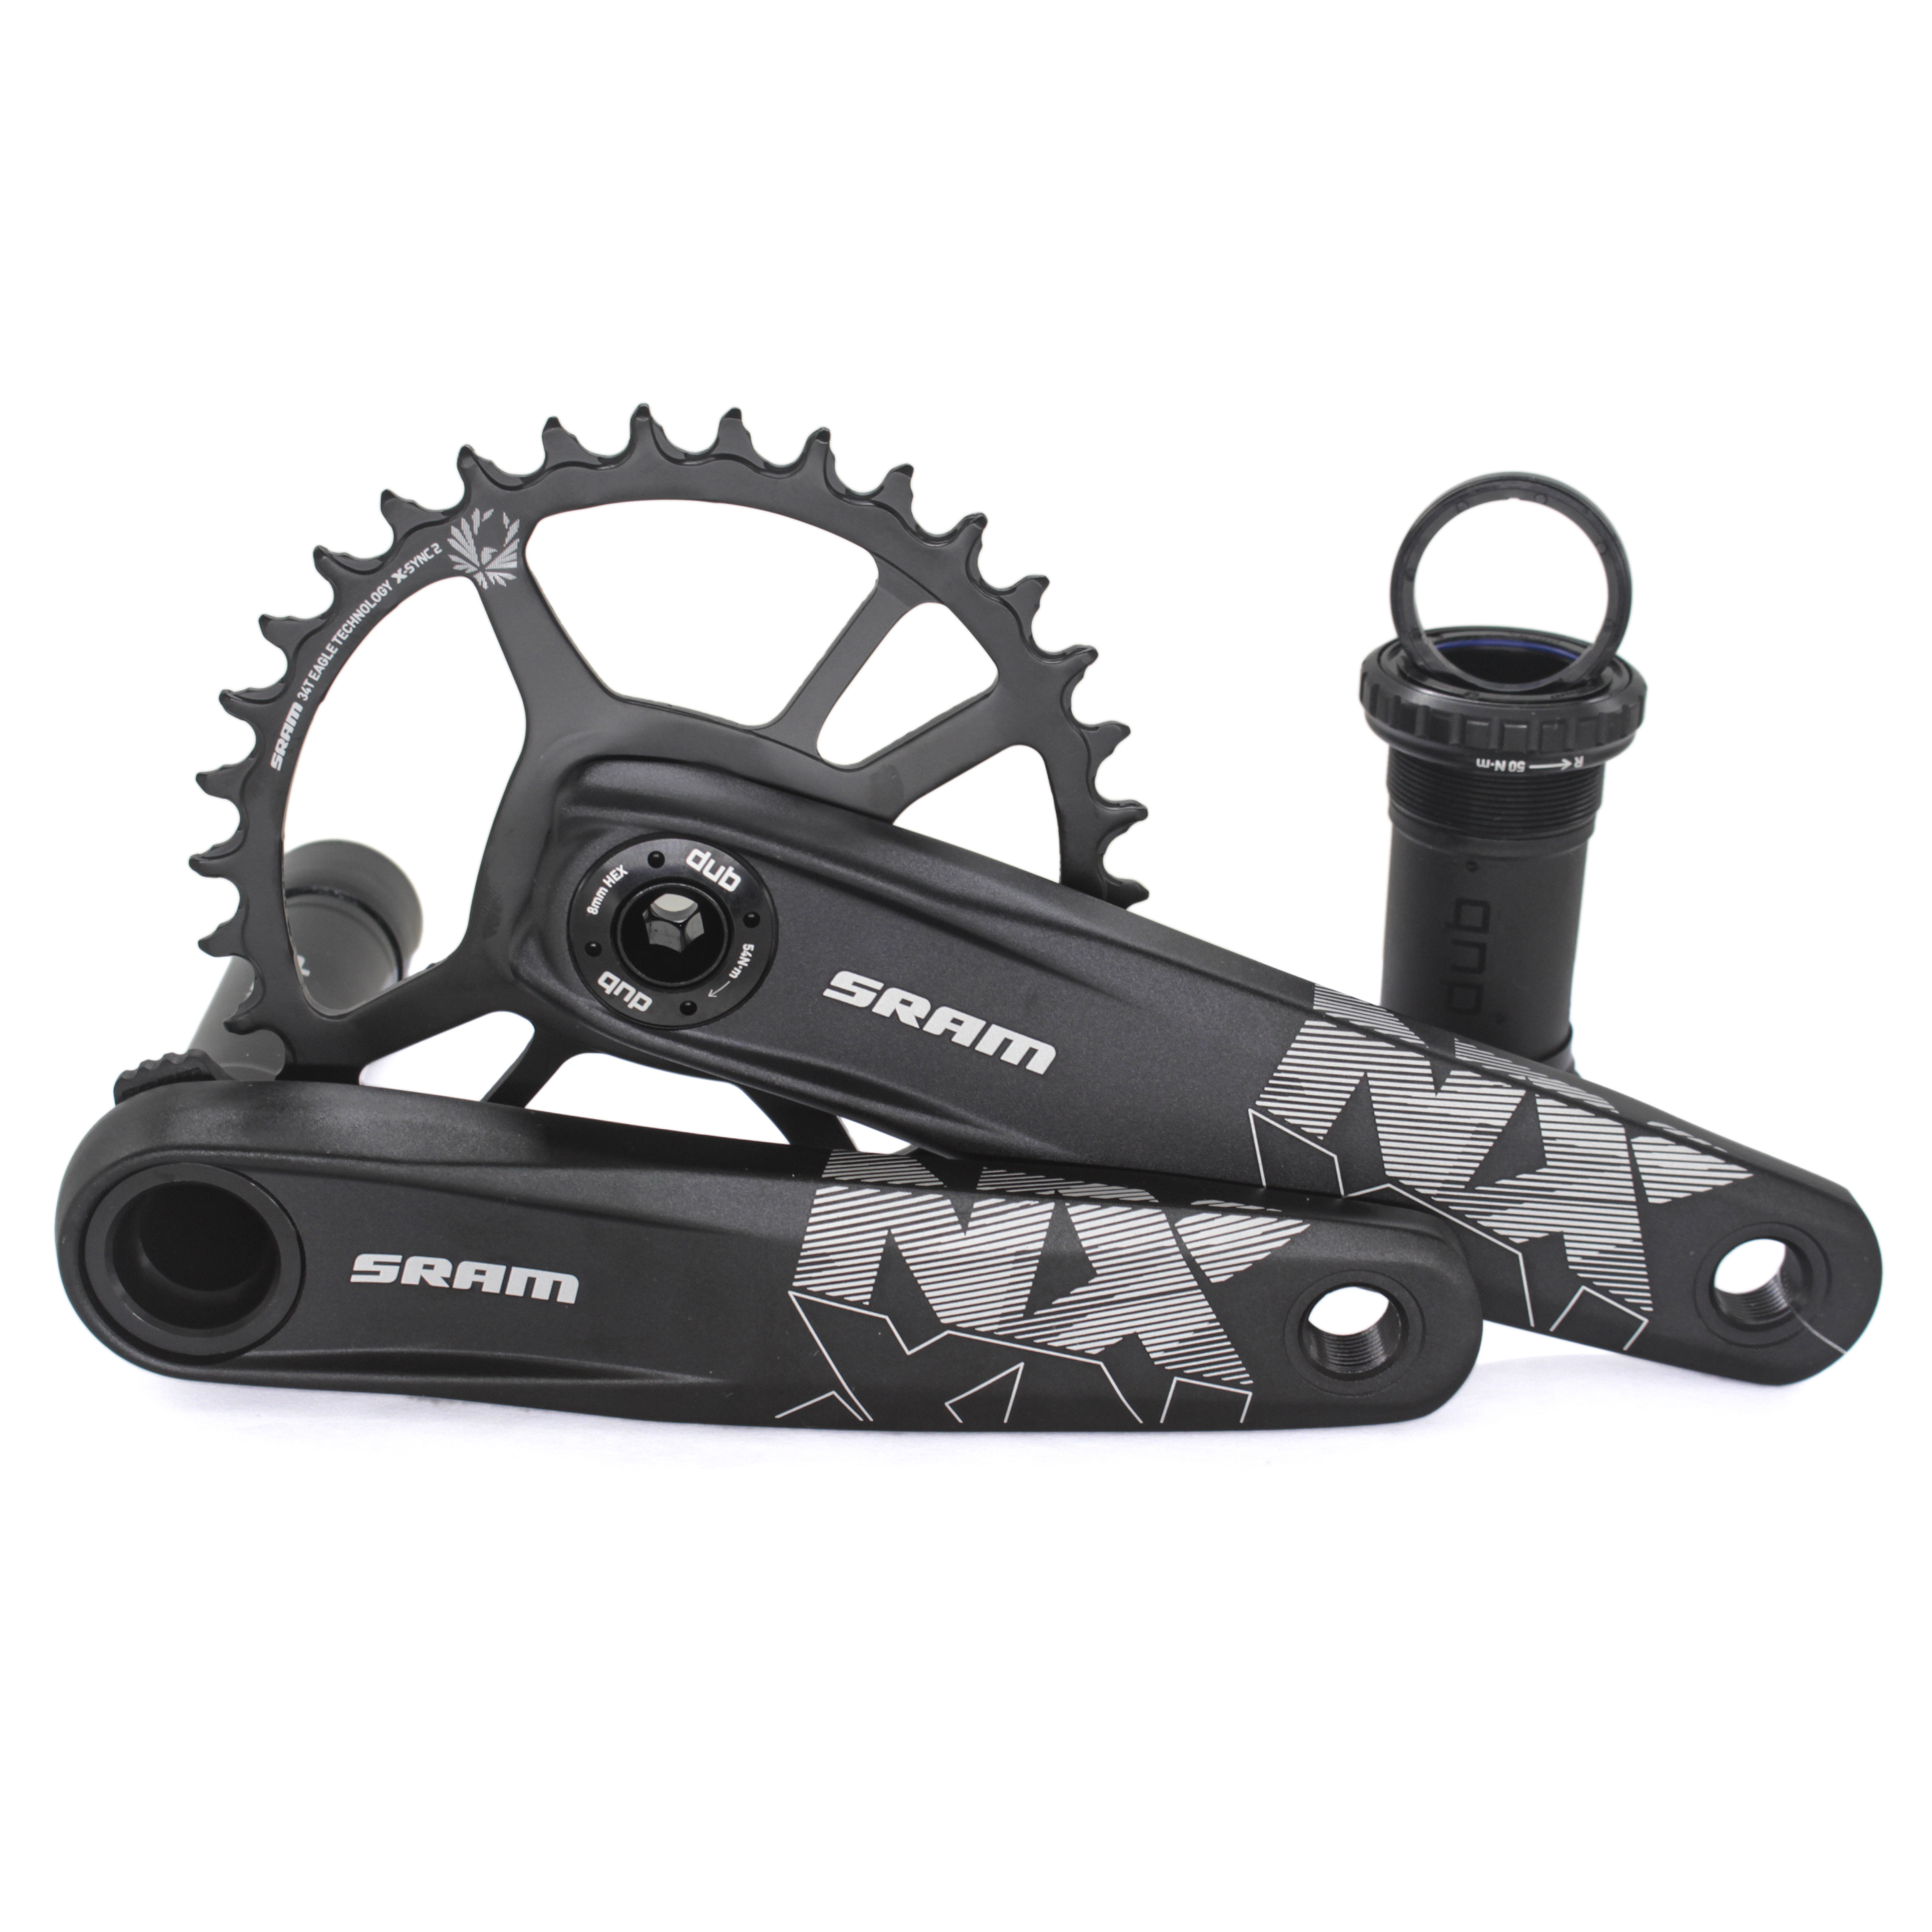 SRAM NX Eagle DUB 175mm Crankset with 32t X-Sync 2 Direct Mount Steel